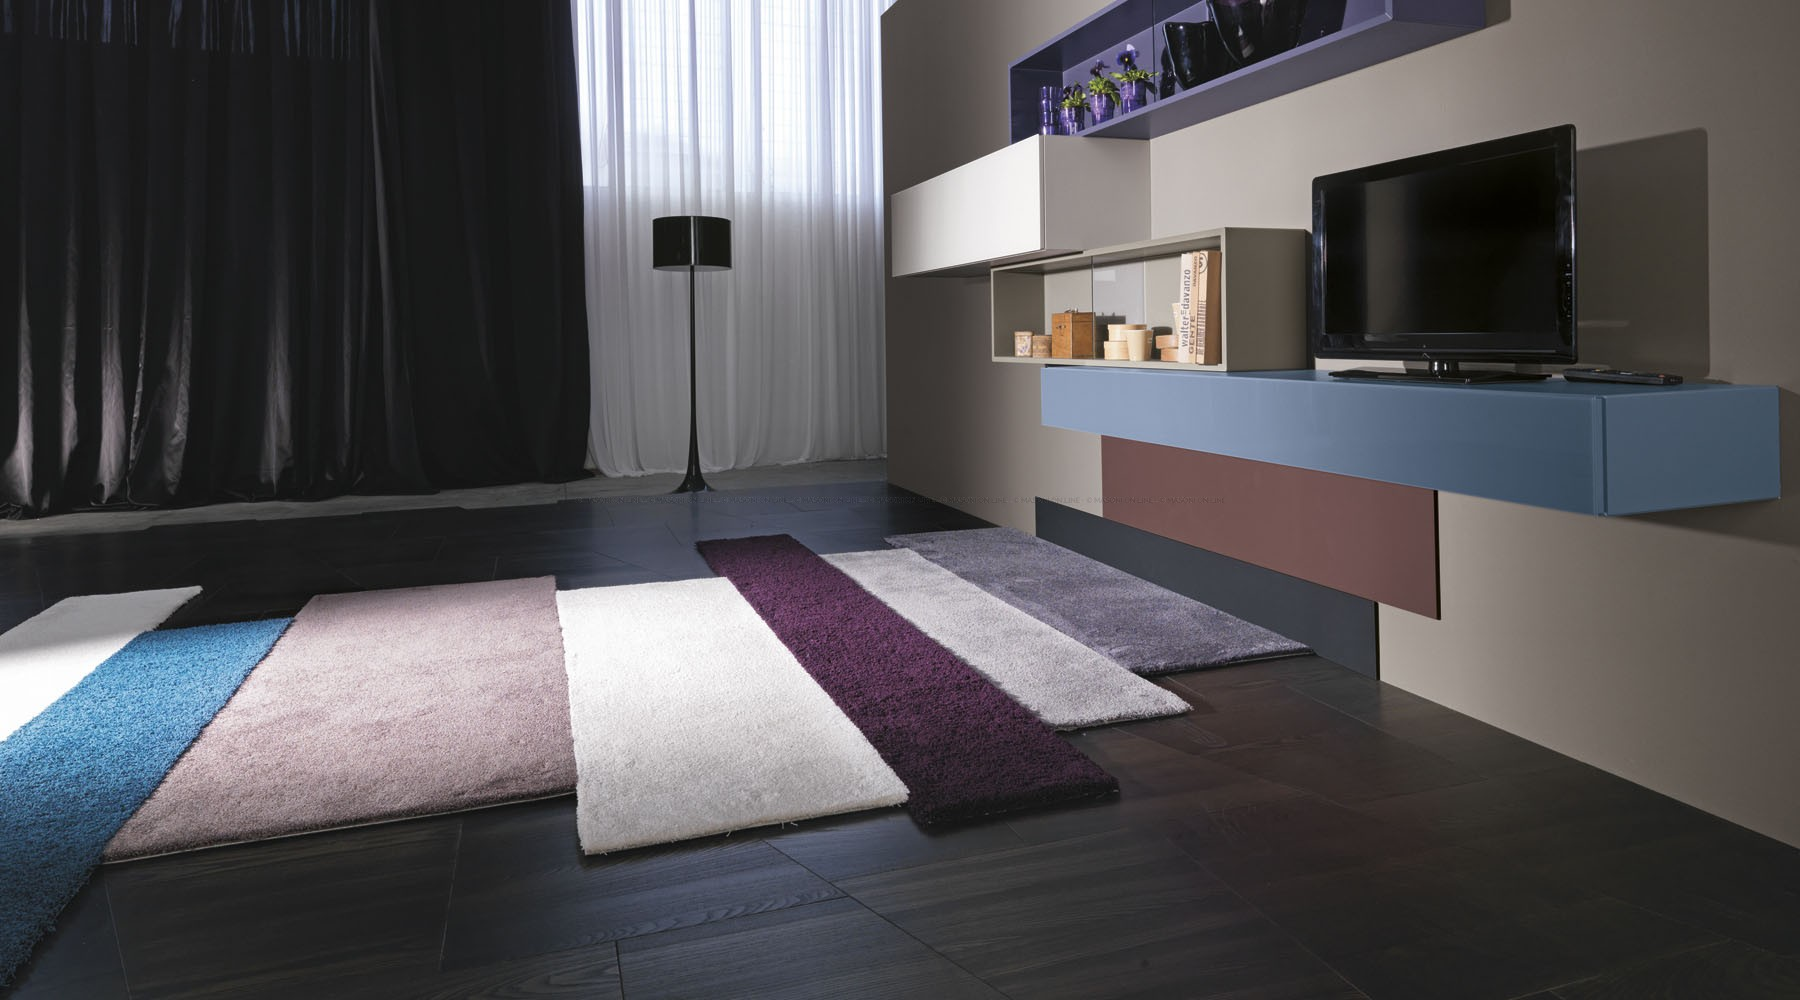 36e8 carpet rugs accessories lago masonionline